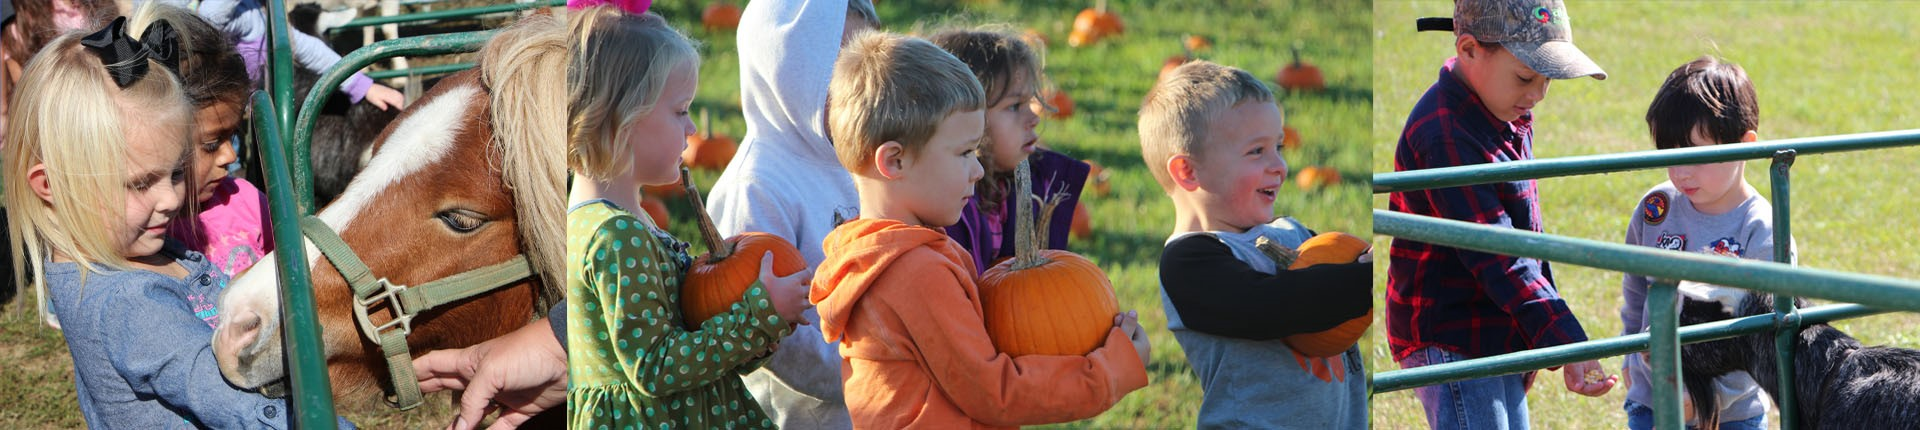 The Farm at Landworks brought pumpkins and a petting zoo for our preschoolers.  This was great way for our children to learn what grows and lives on a farm!